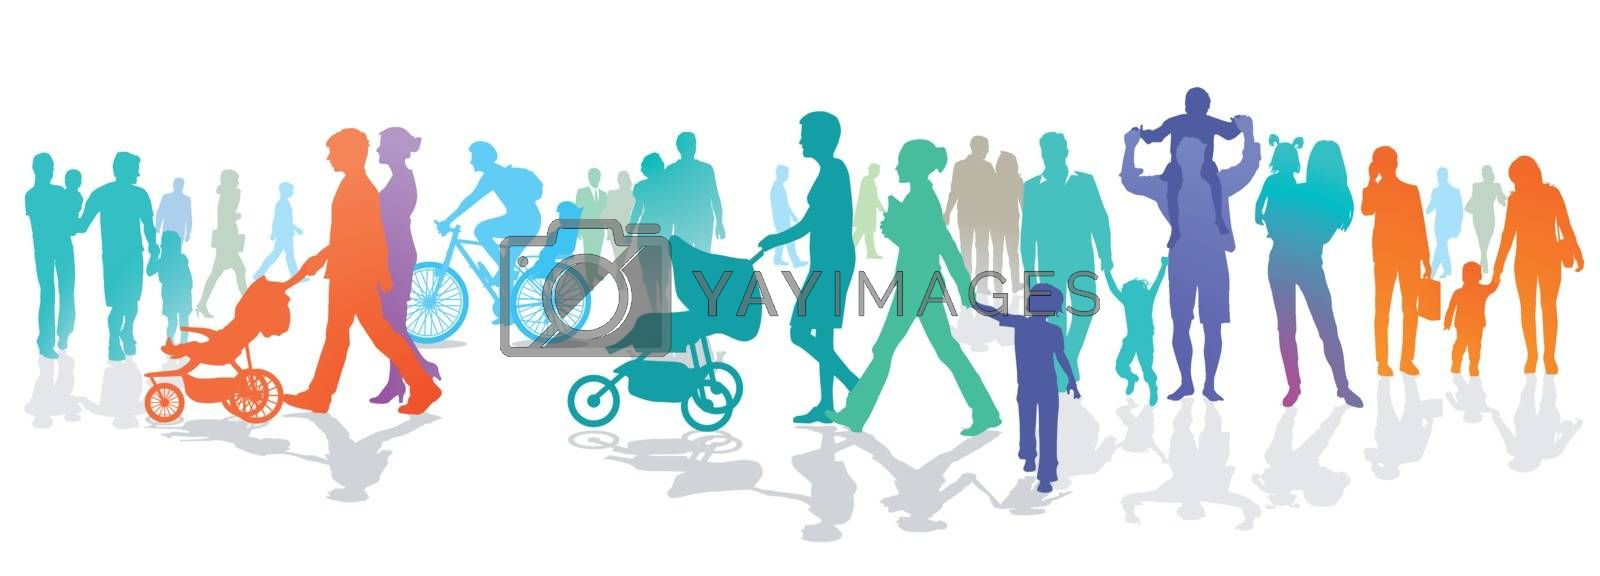 Person group with families and children, illustration